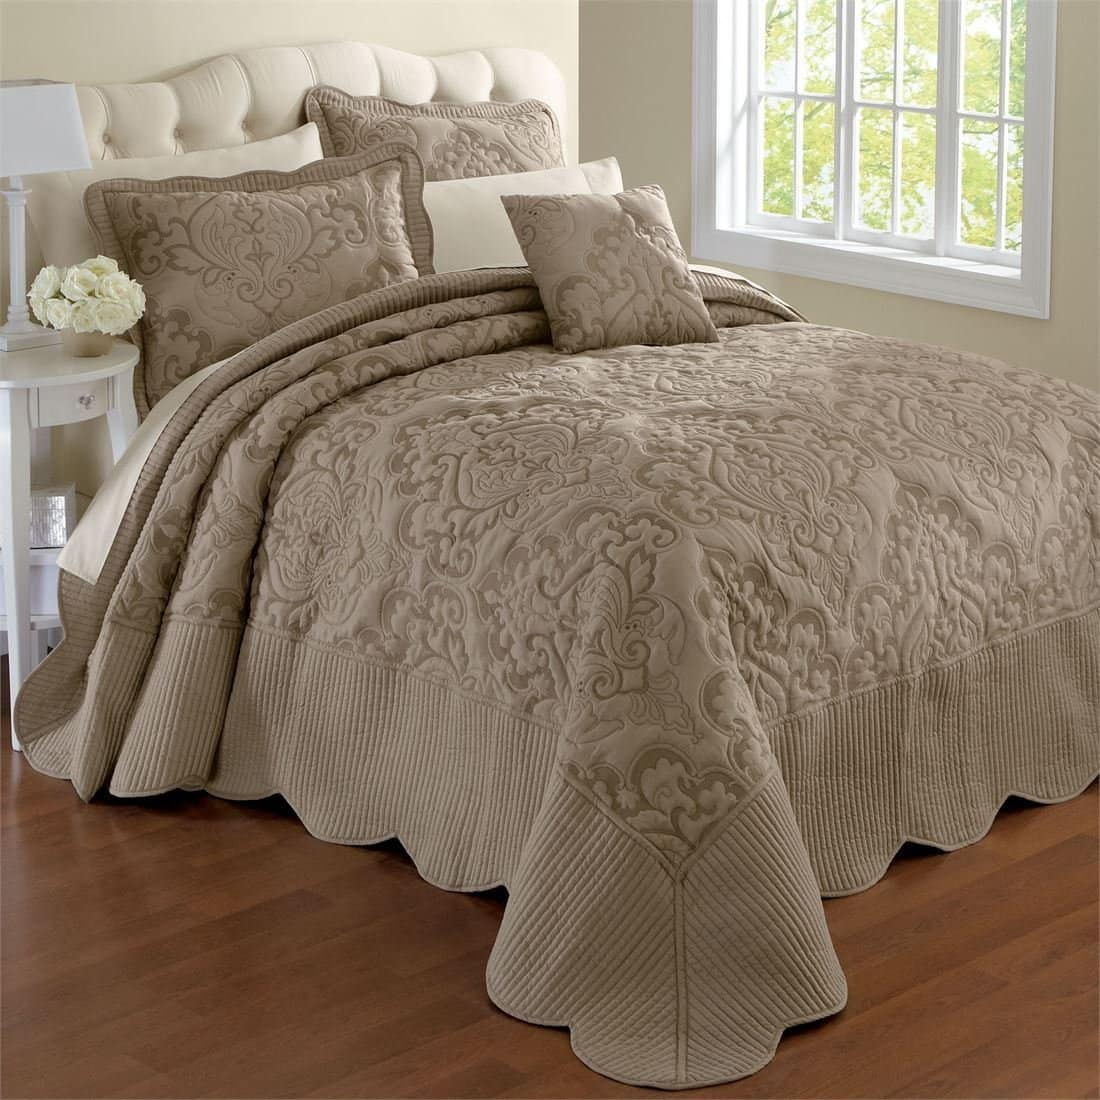 matches. ($ - $) Find great deals on the latest styles of King size chenille bedspreads. Compare prices & save money on Bedspreads.